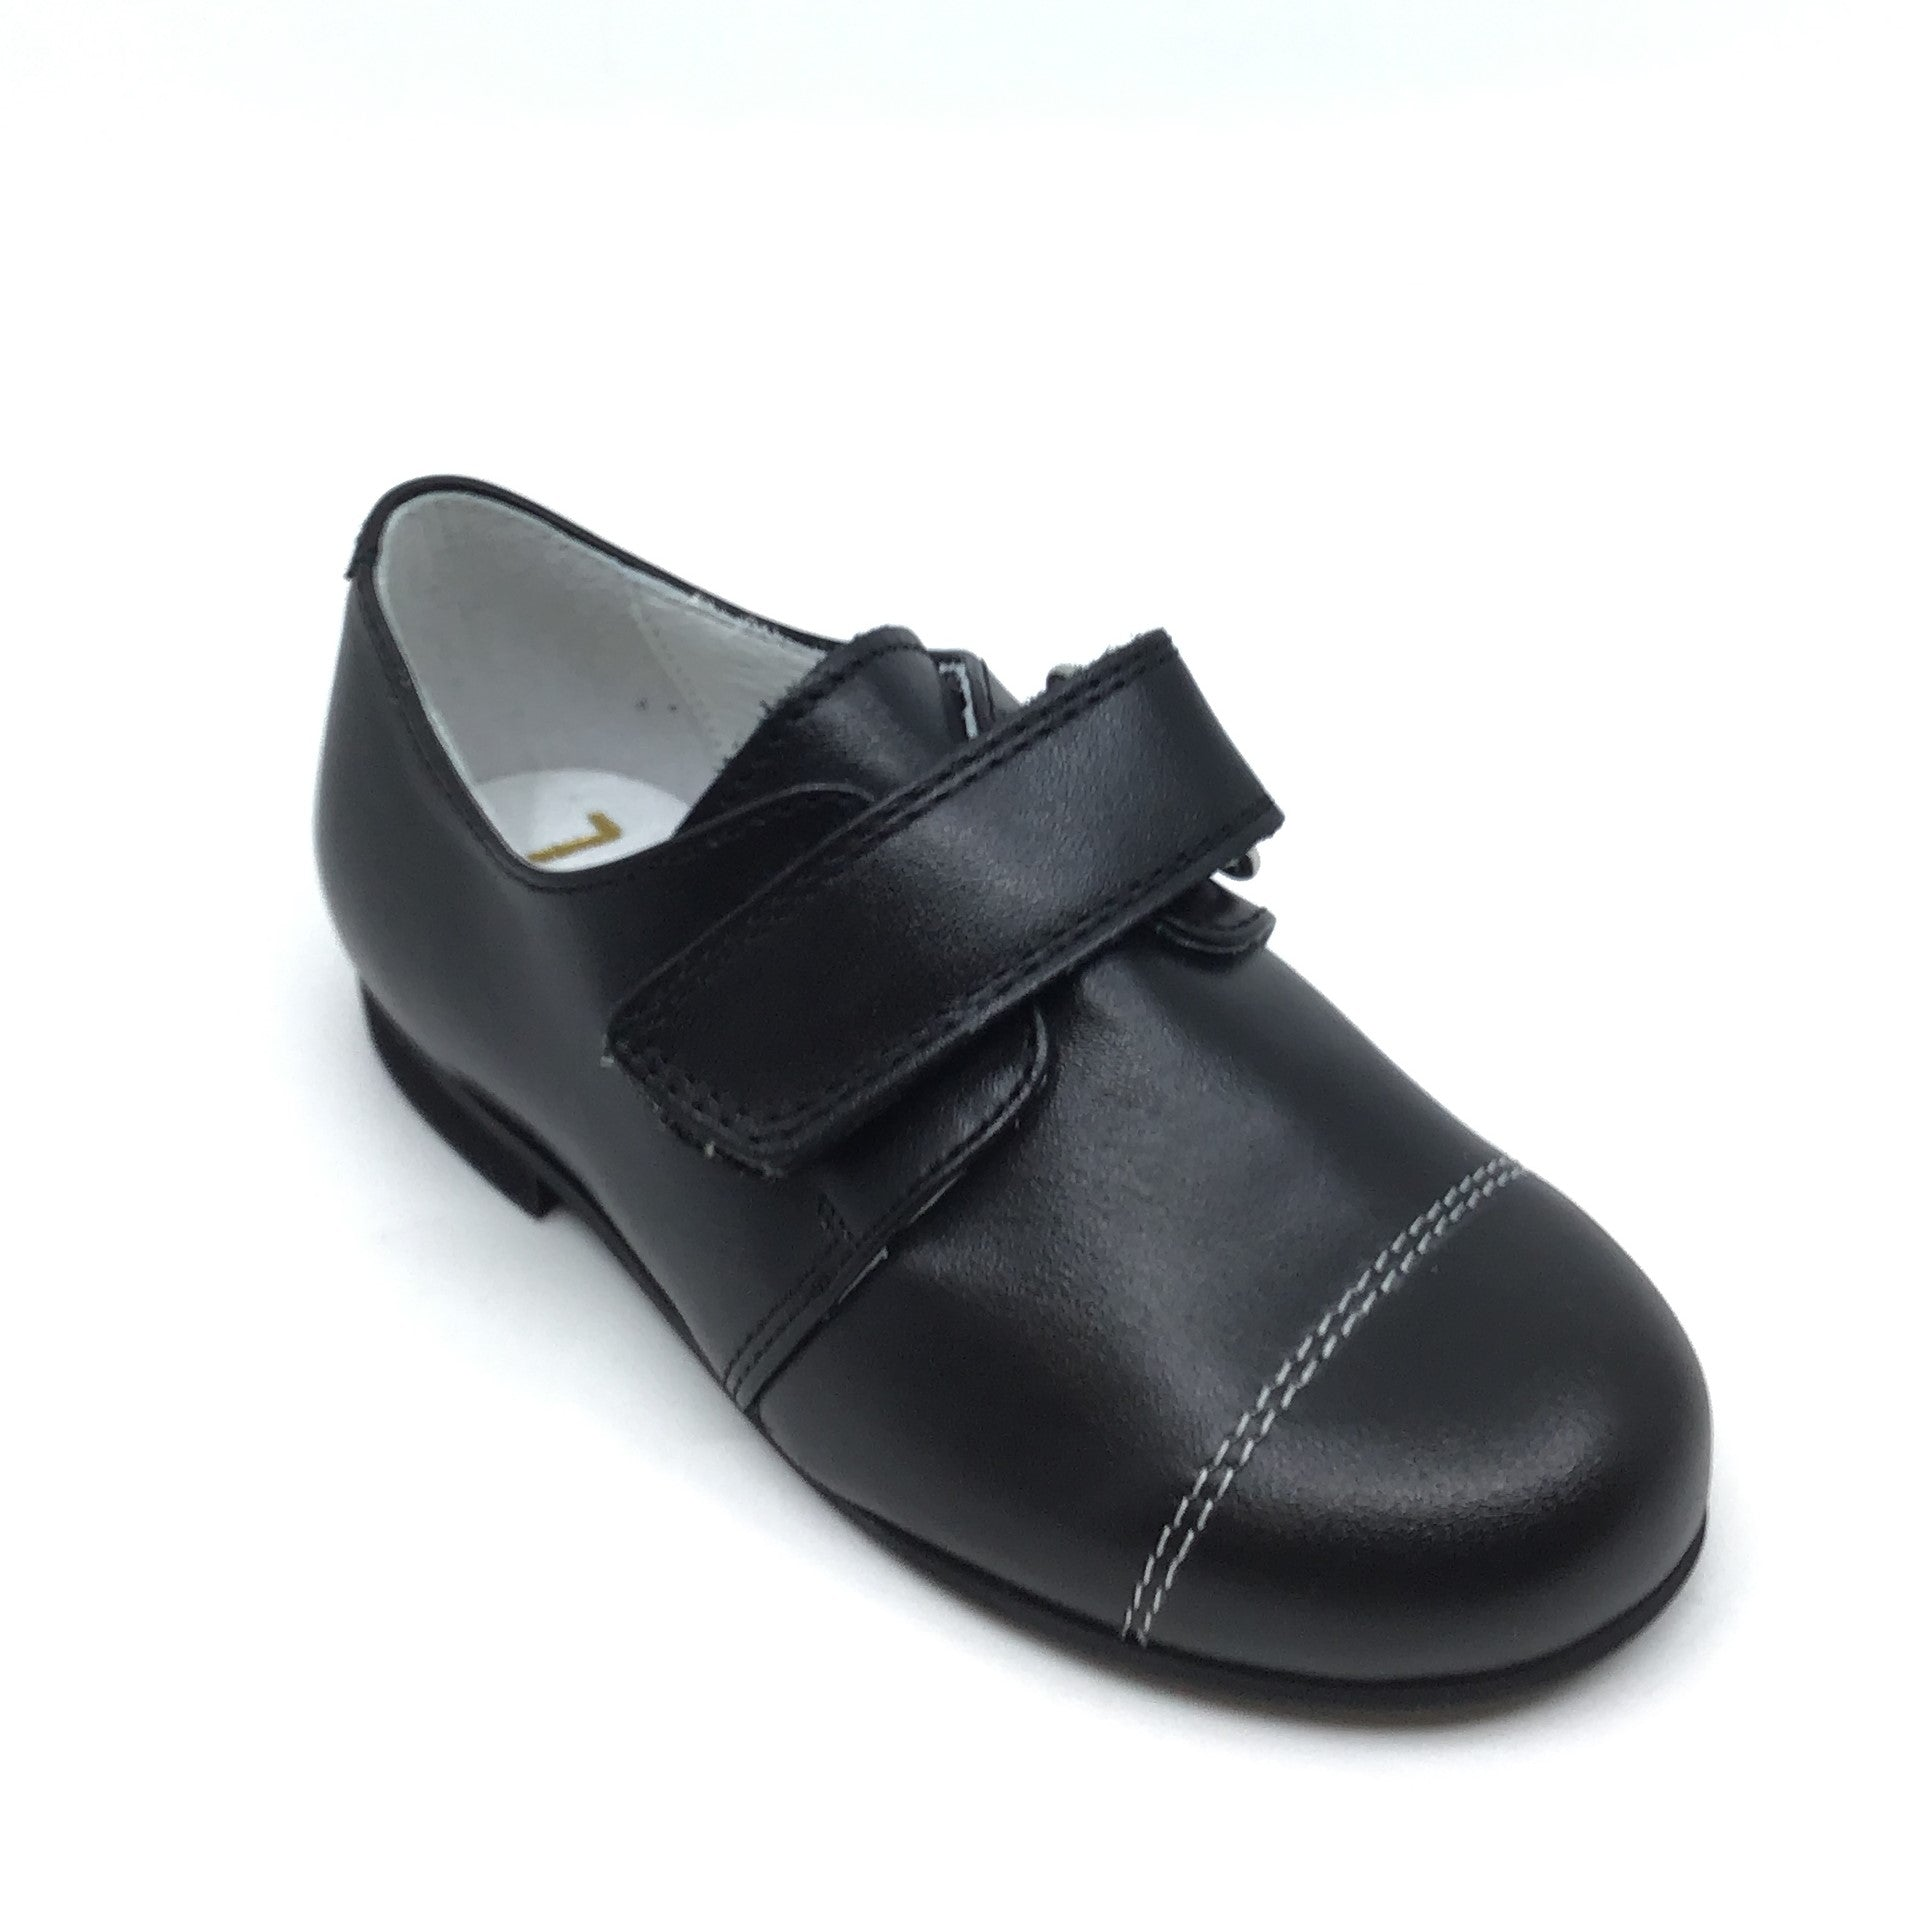 Zapeti Black Velcro Dress Shoe